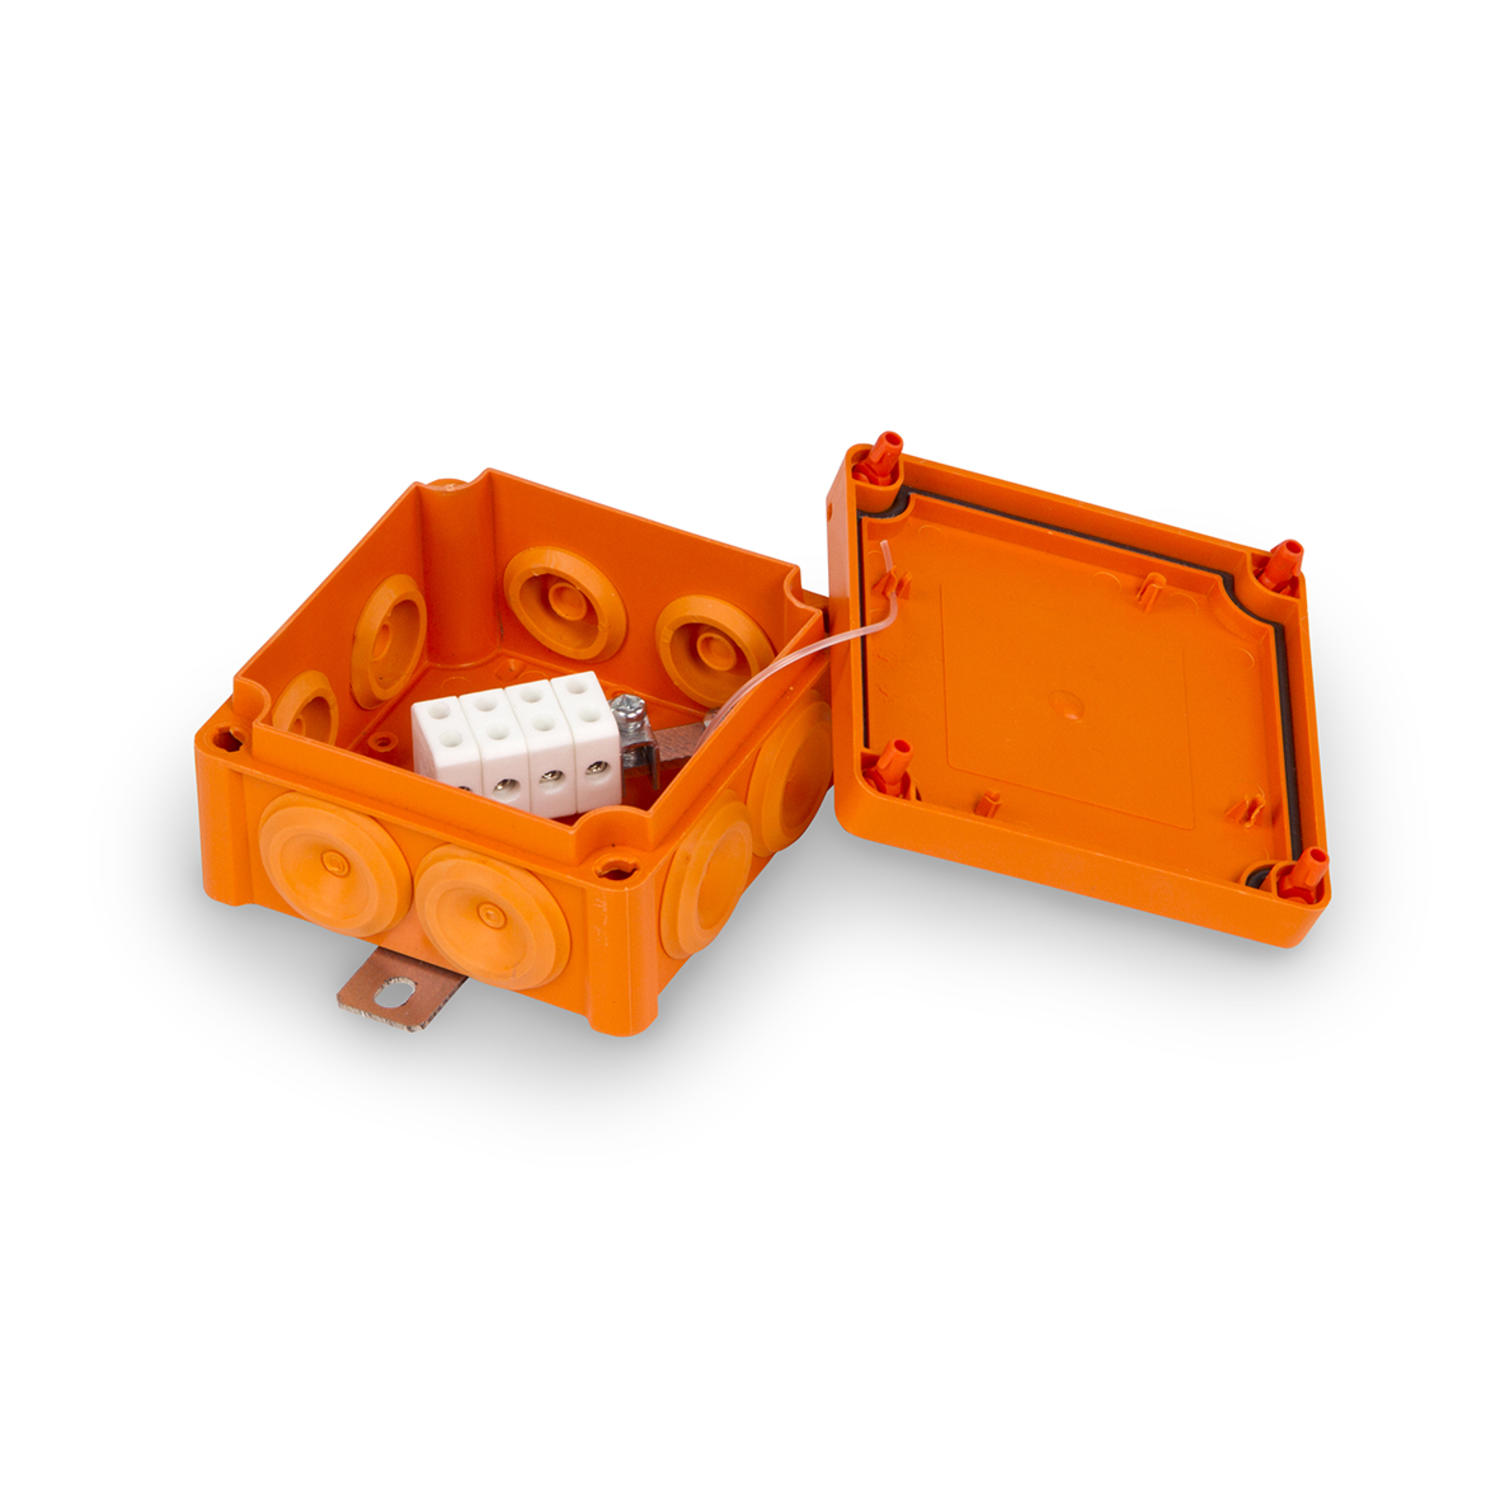 Fire protection junction boxes – Plastic